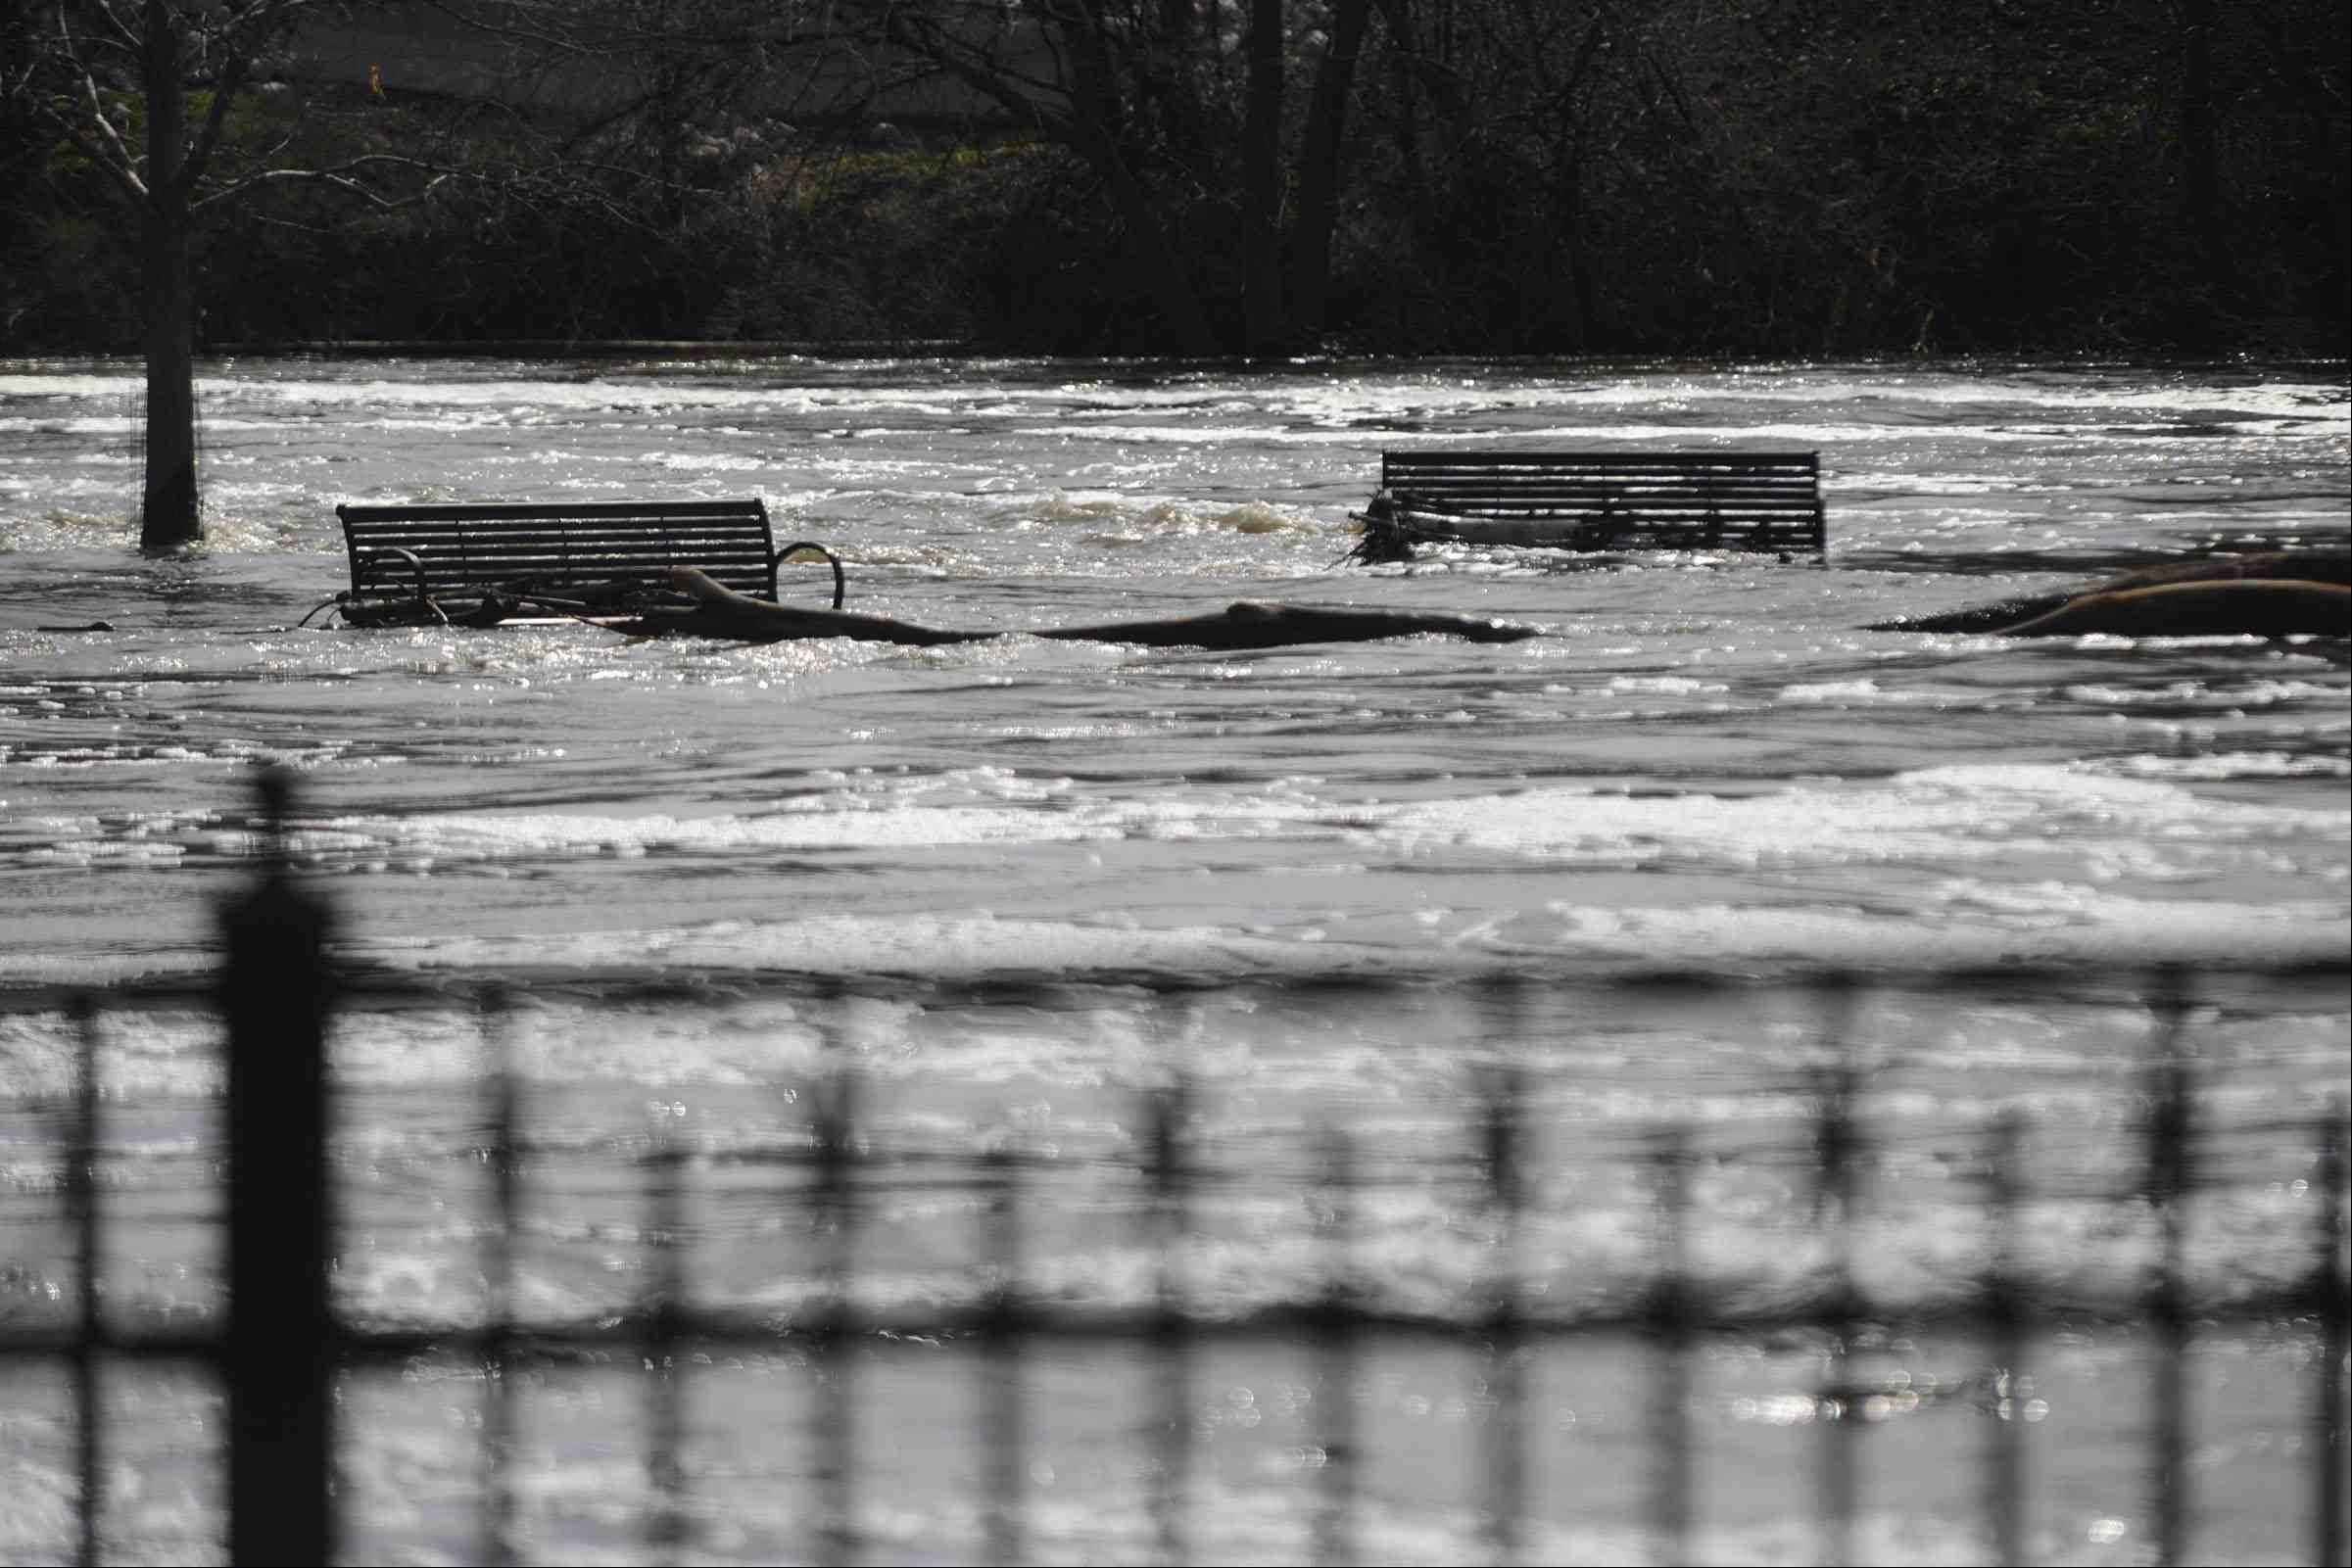 The water level Sunday nearly submerged the benches on closed Walton Island on the Fox River in Elgin.